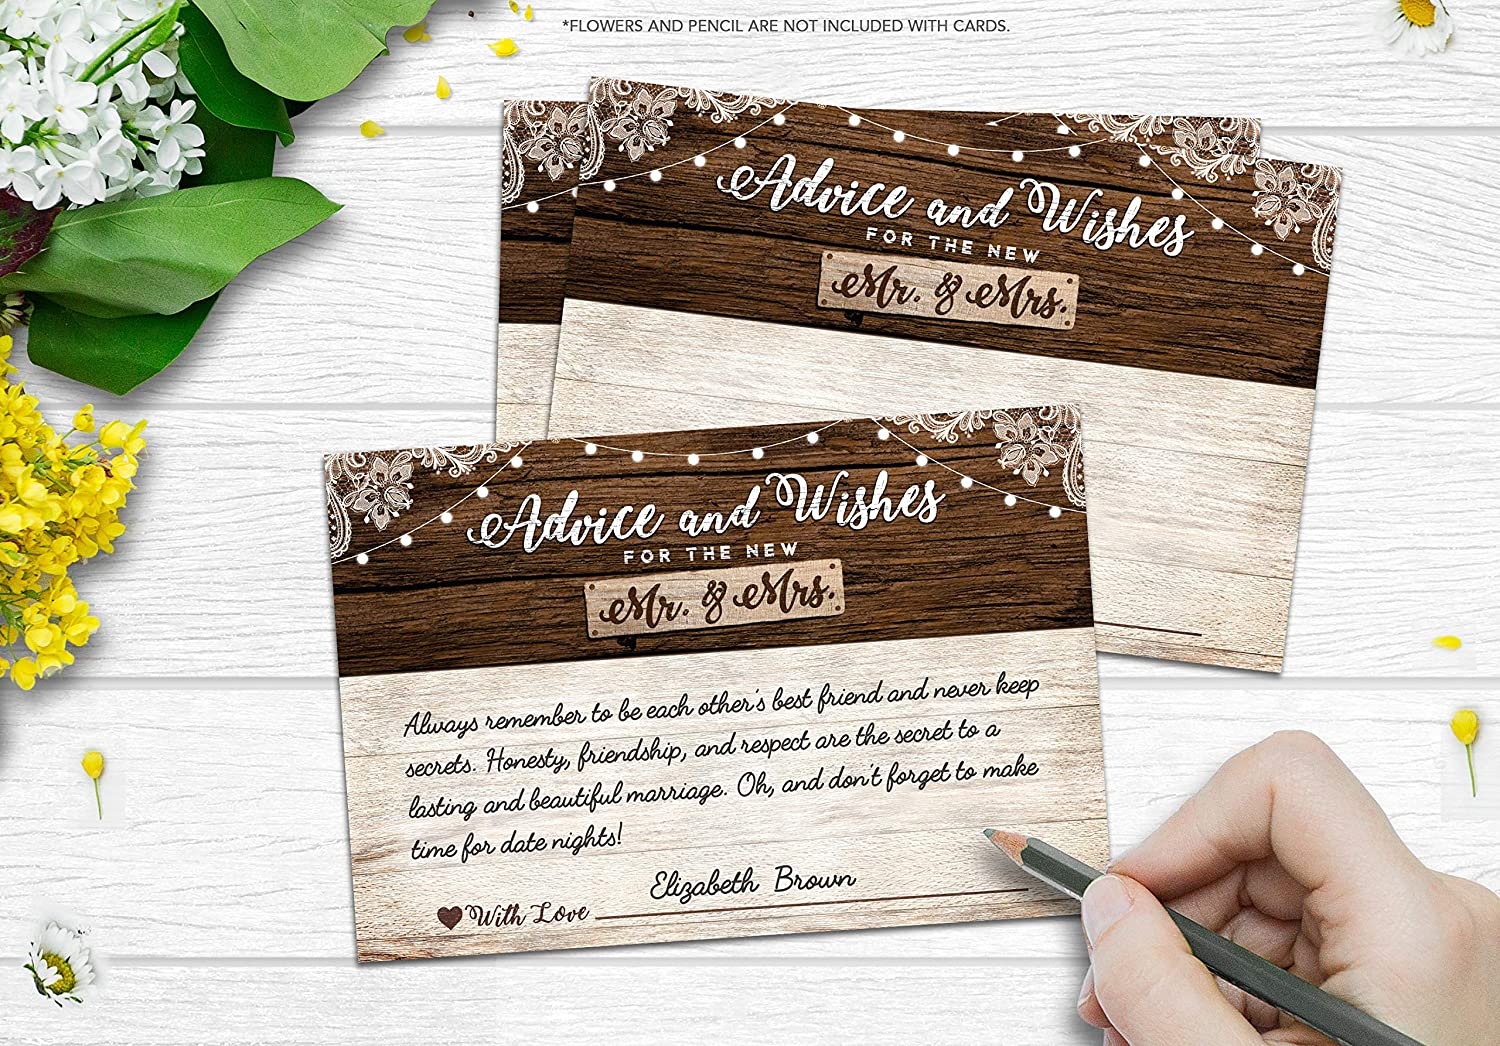 50 rustic wedding advice cards well wishes for the bride and groom bridal